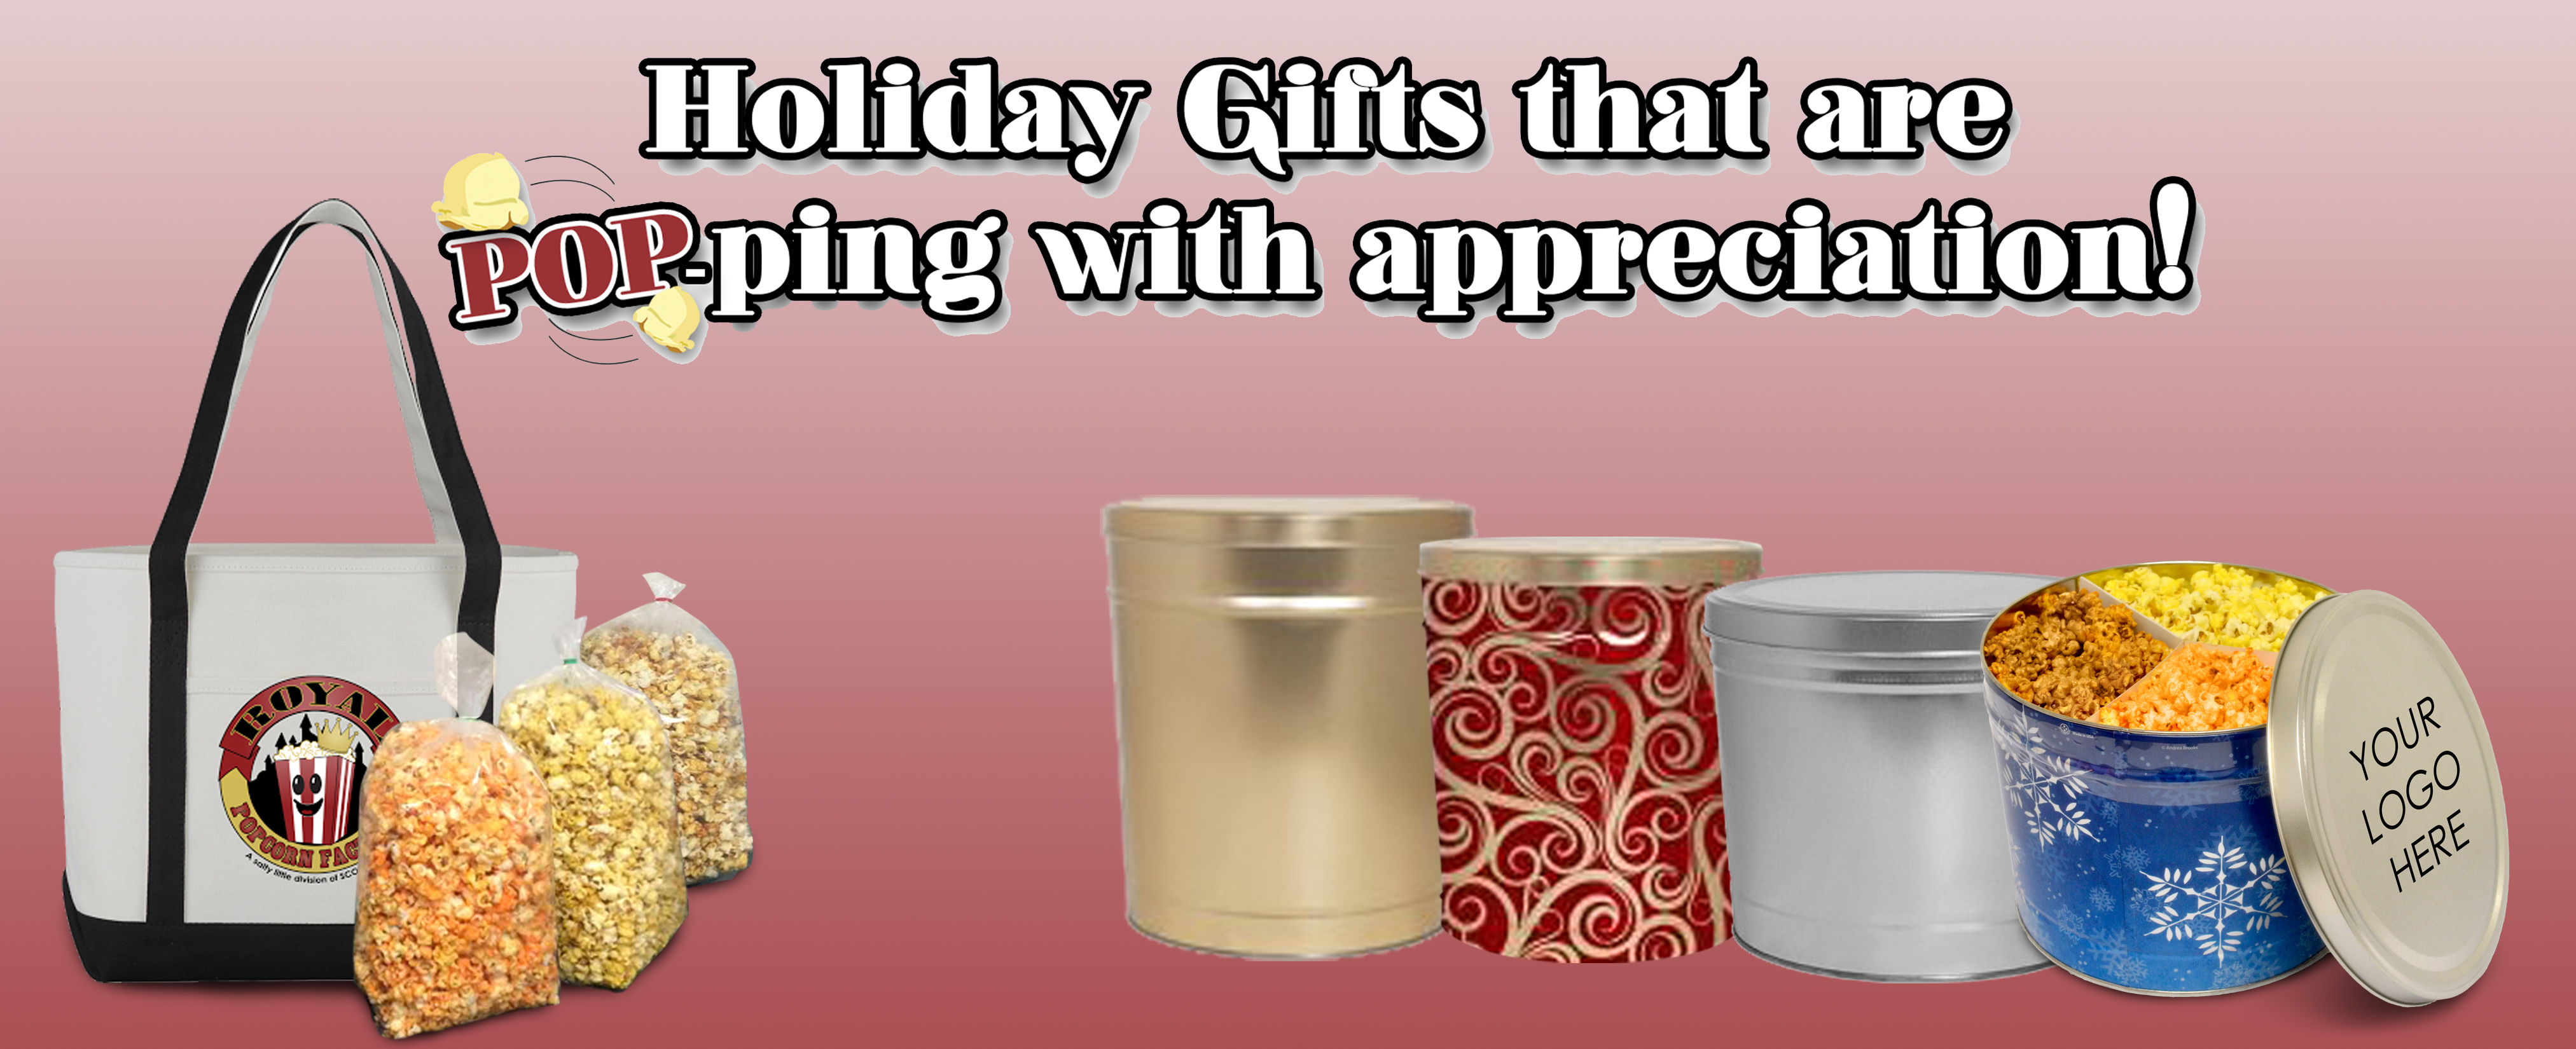 Popcorn Holiday Gifts